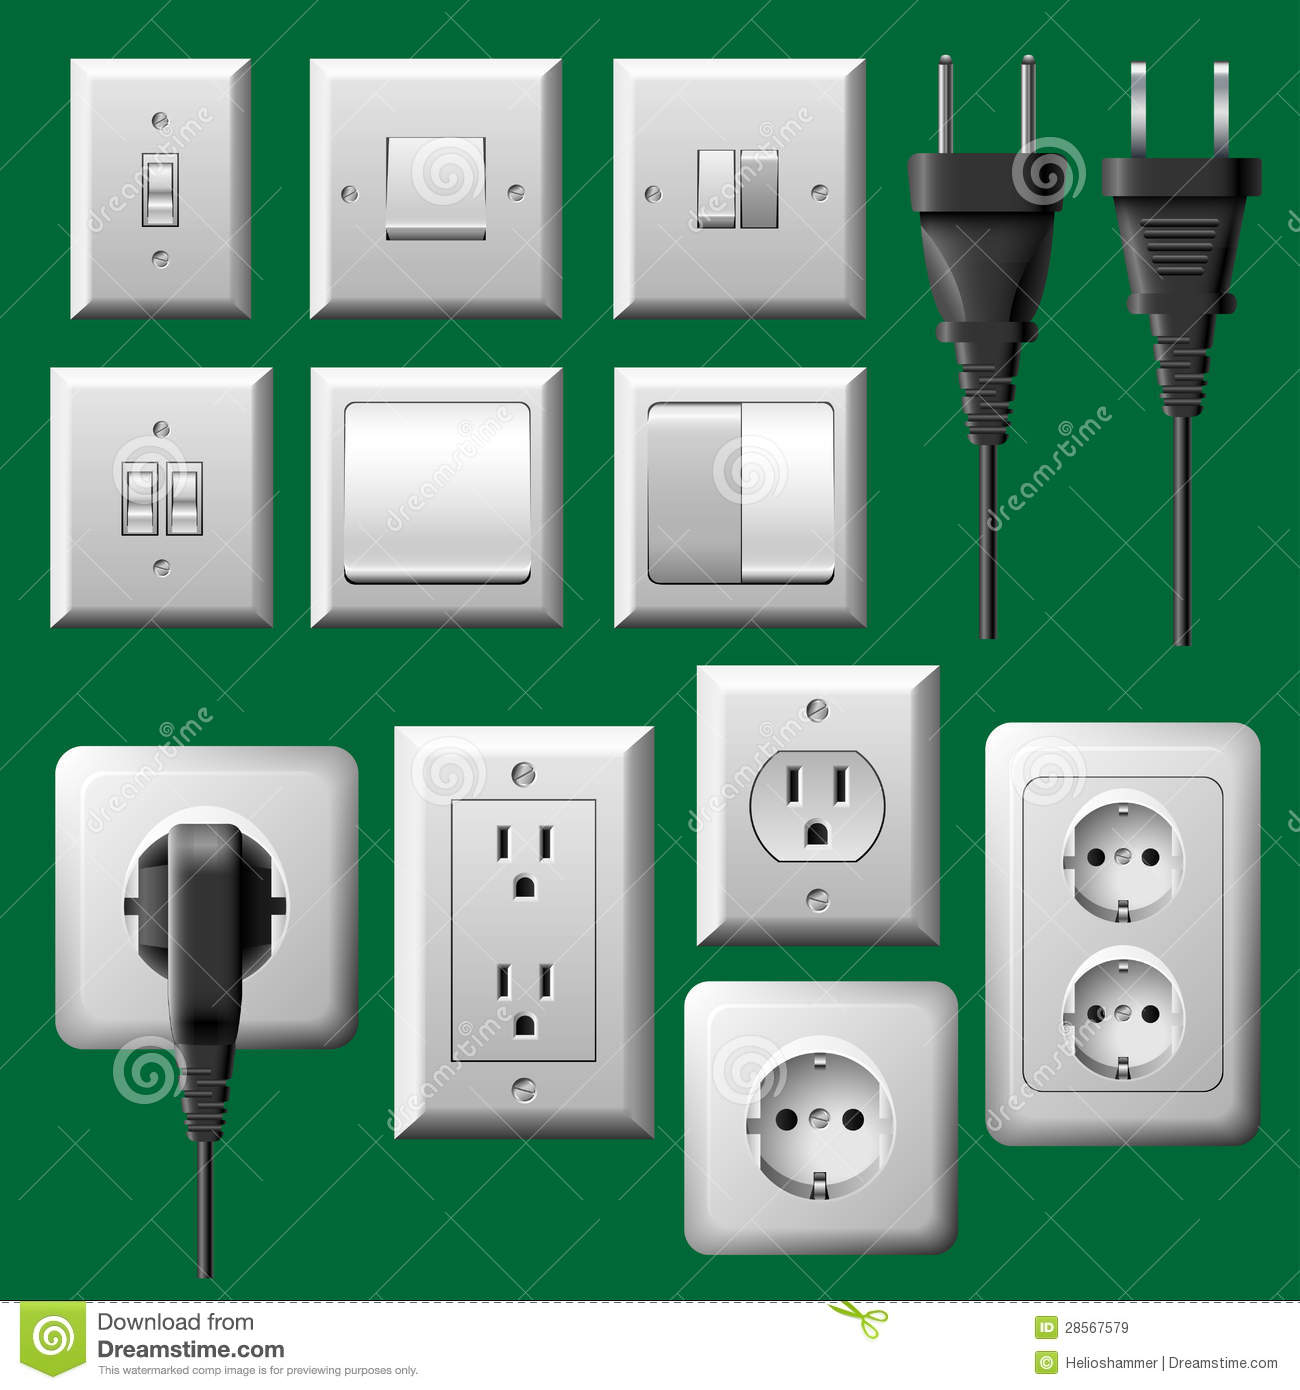 Power Outlet Light Switch And Electrical Plug Set Royalty Free Stock Images